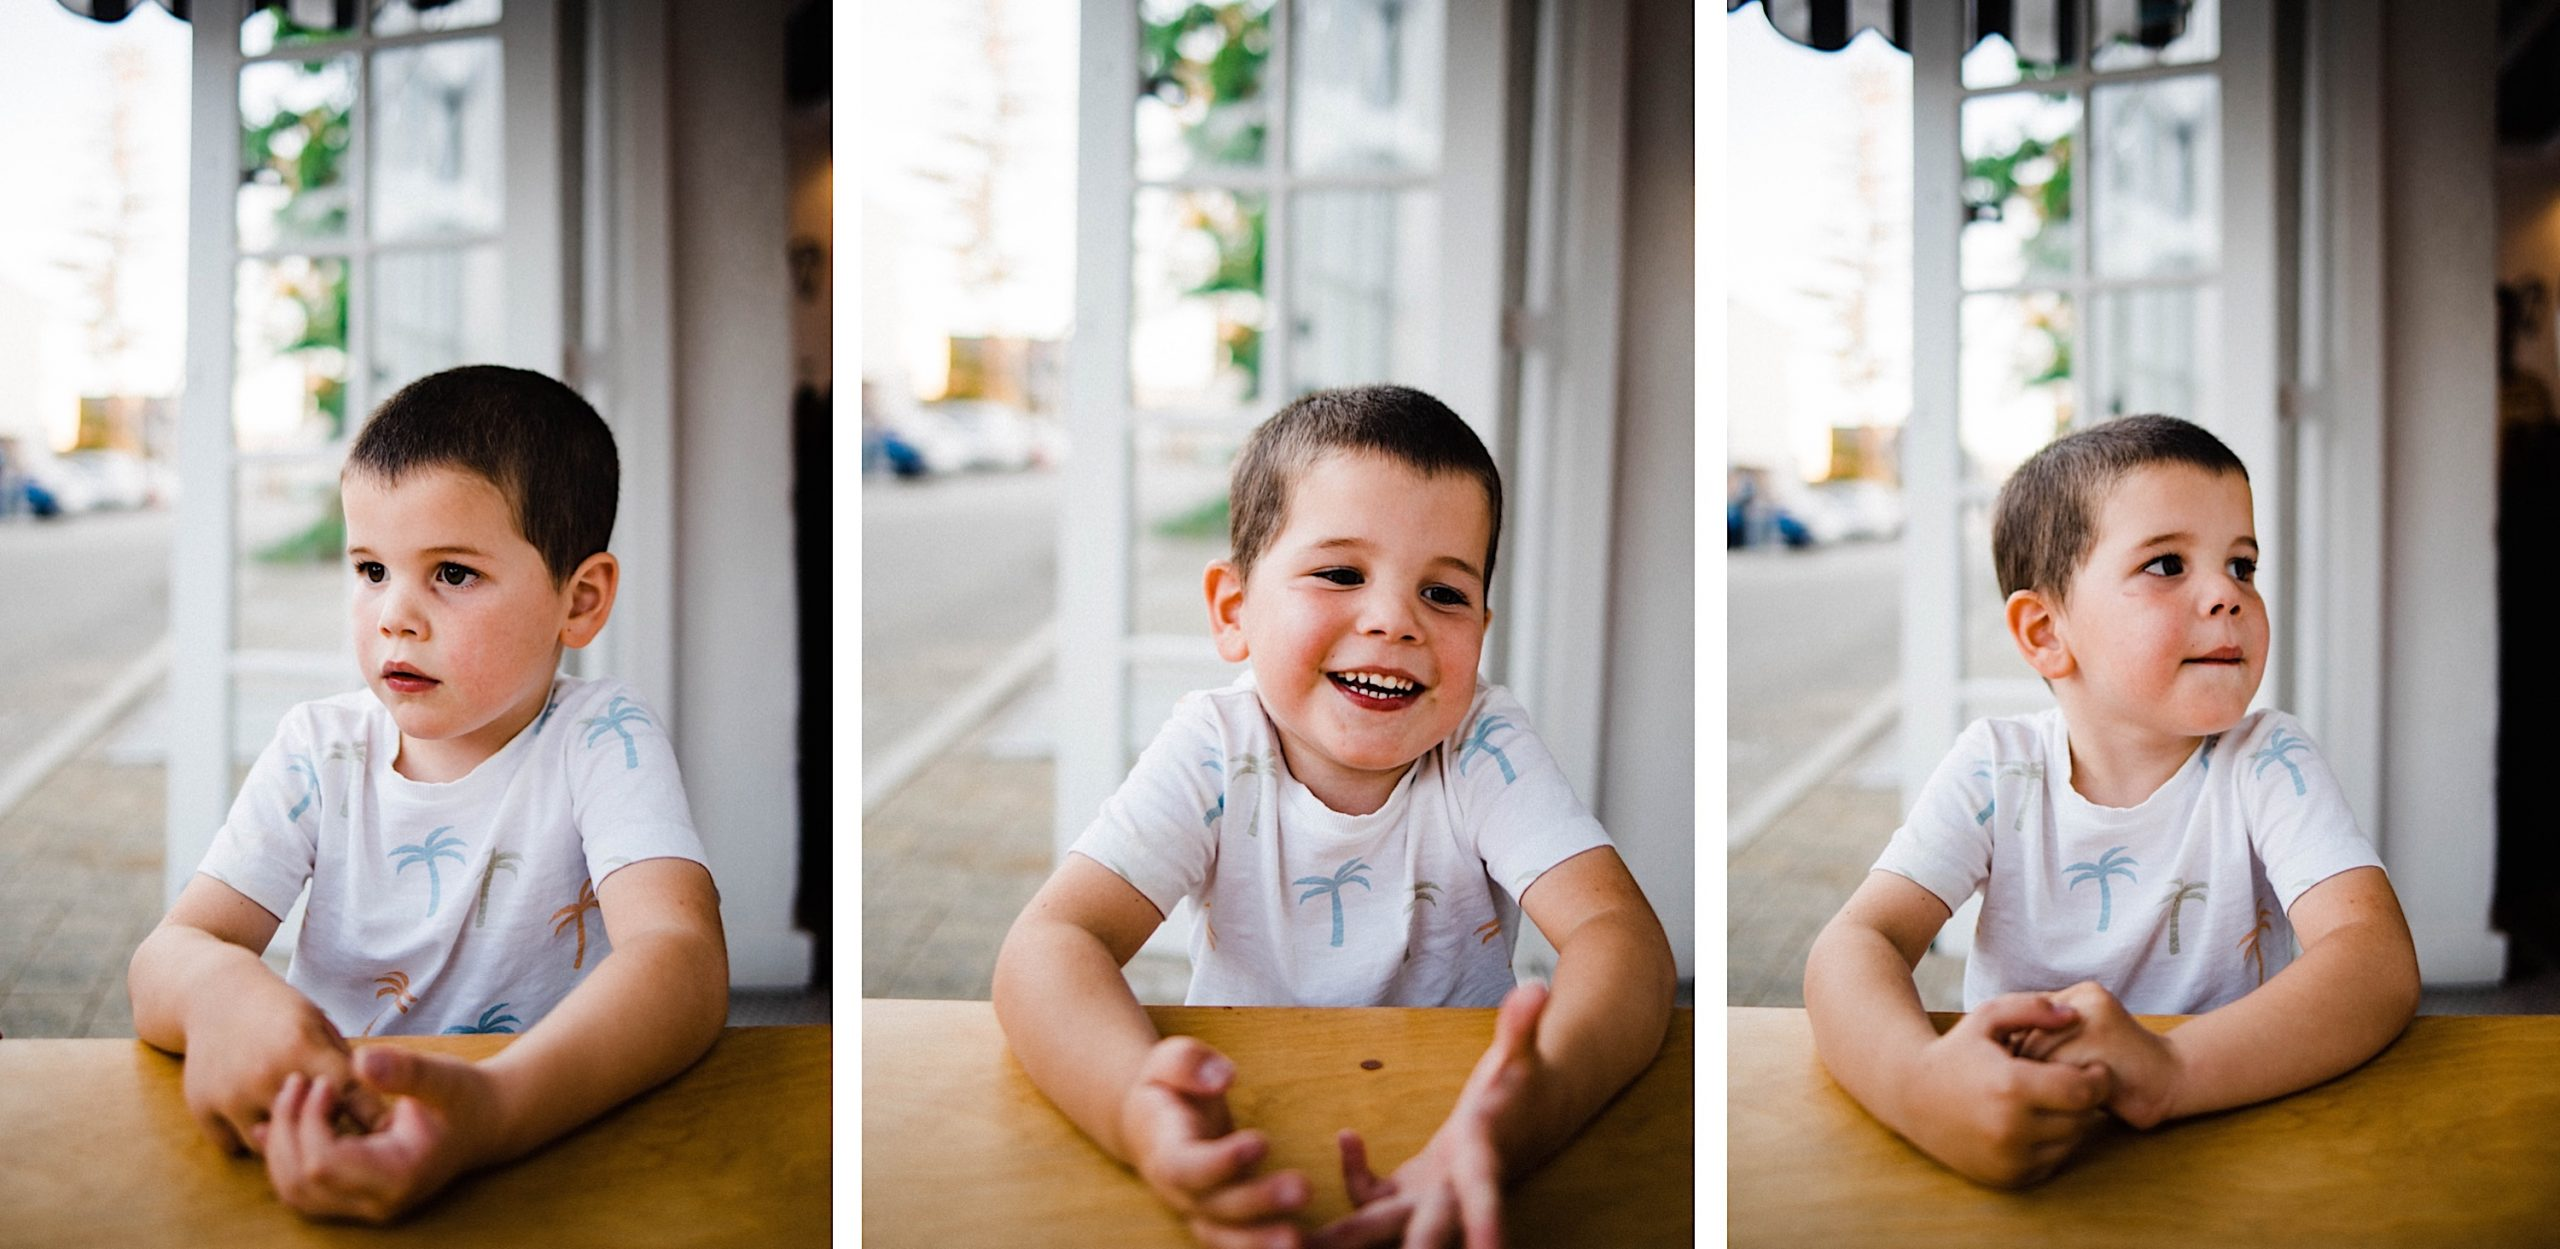 Three photos, side-by-side, of a boy talking and using his hands expressively during a candid family portrait session.